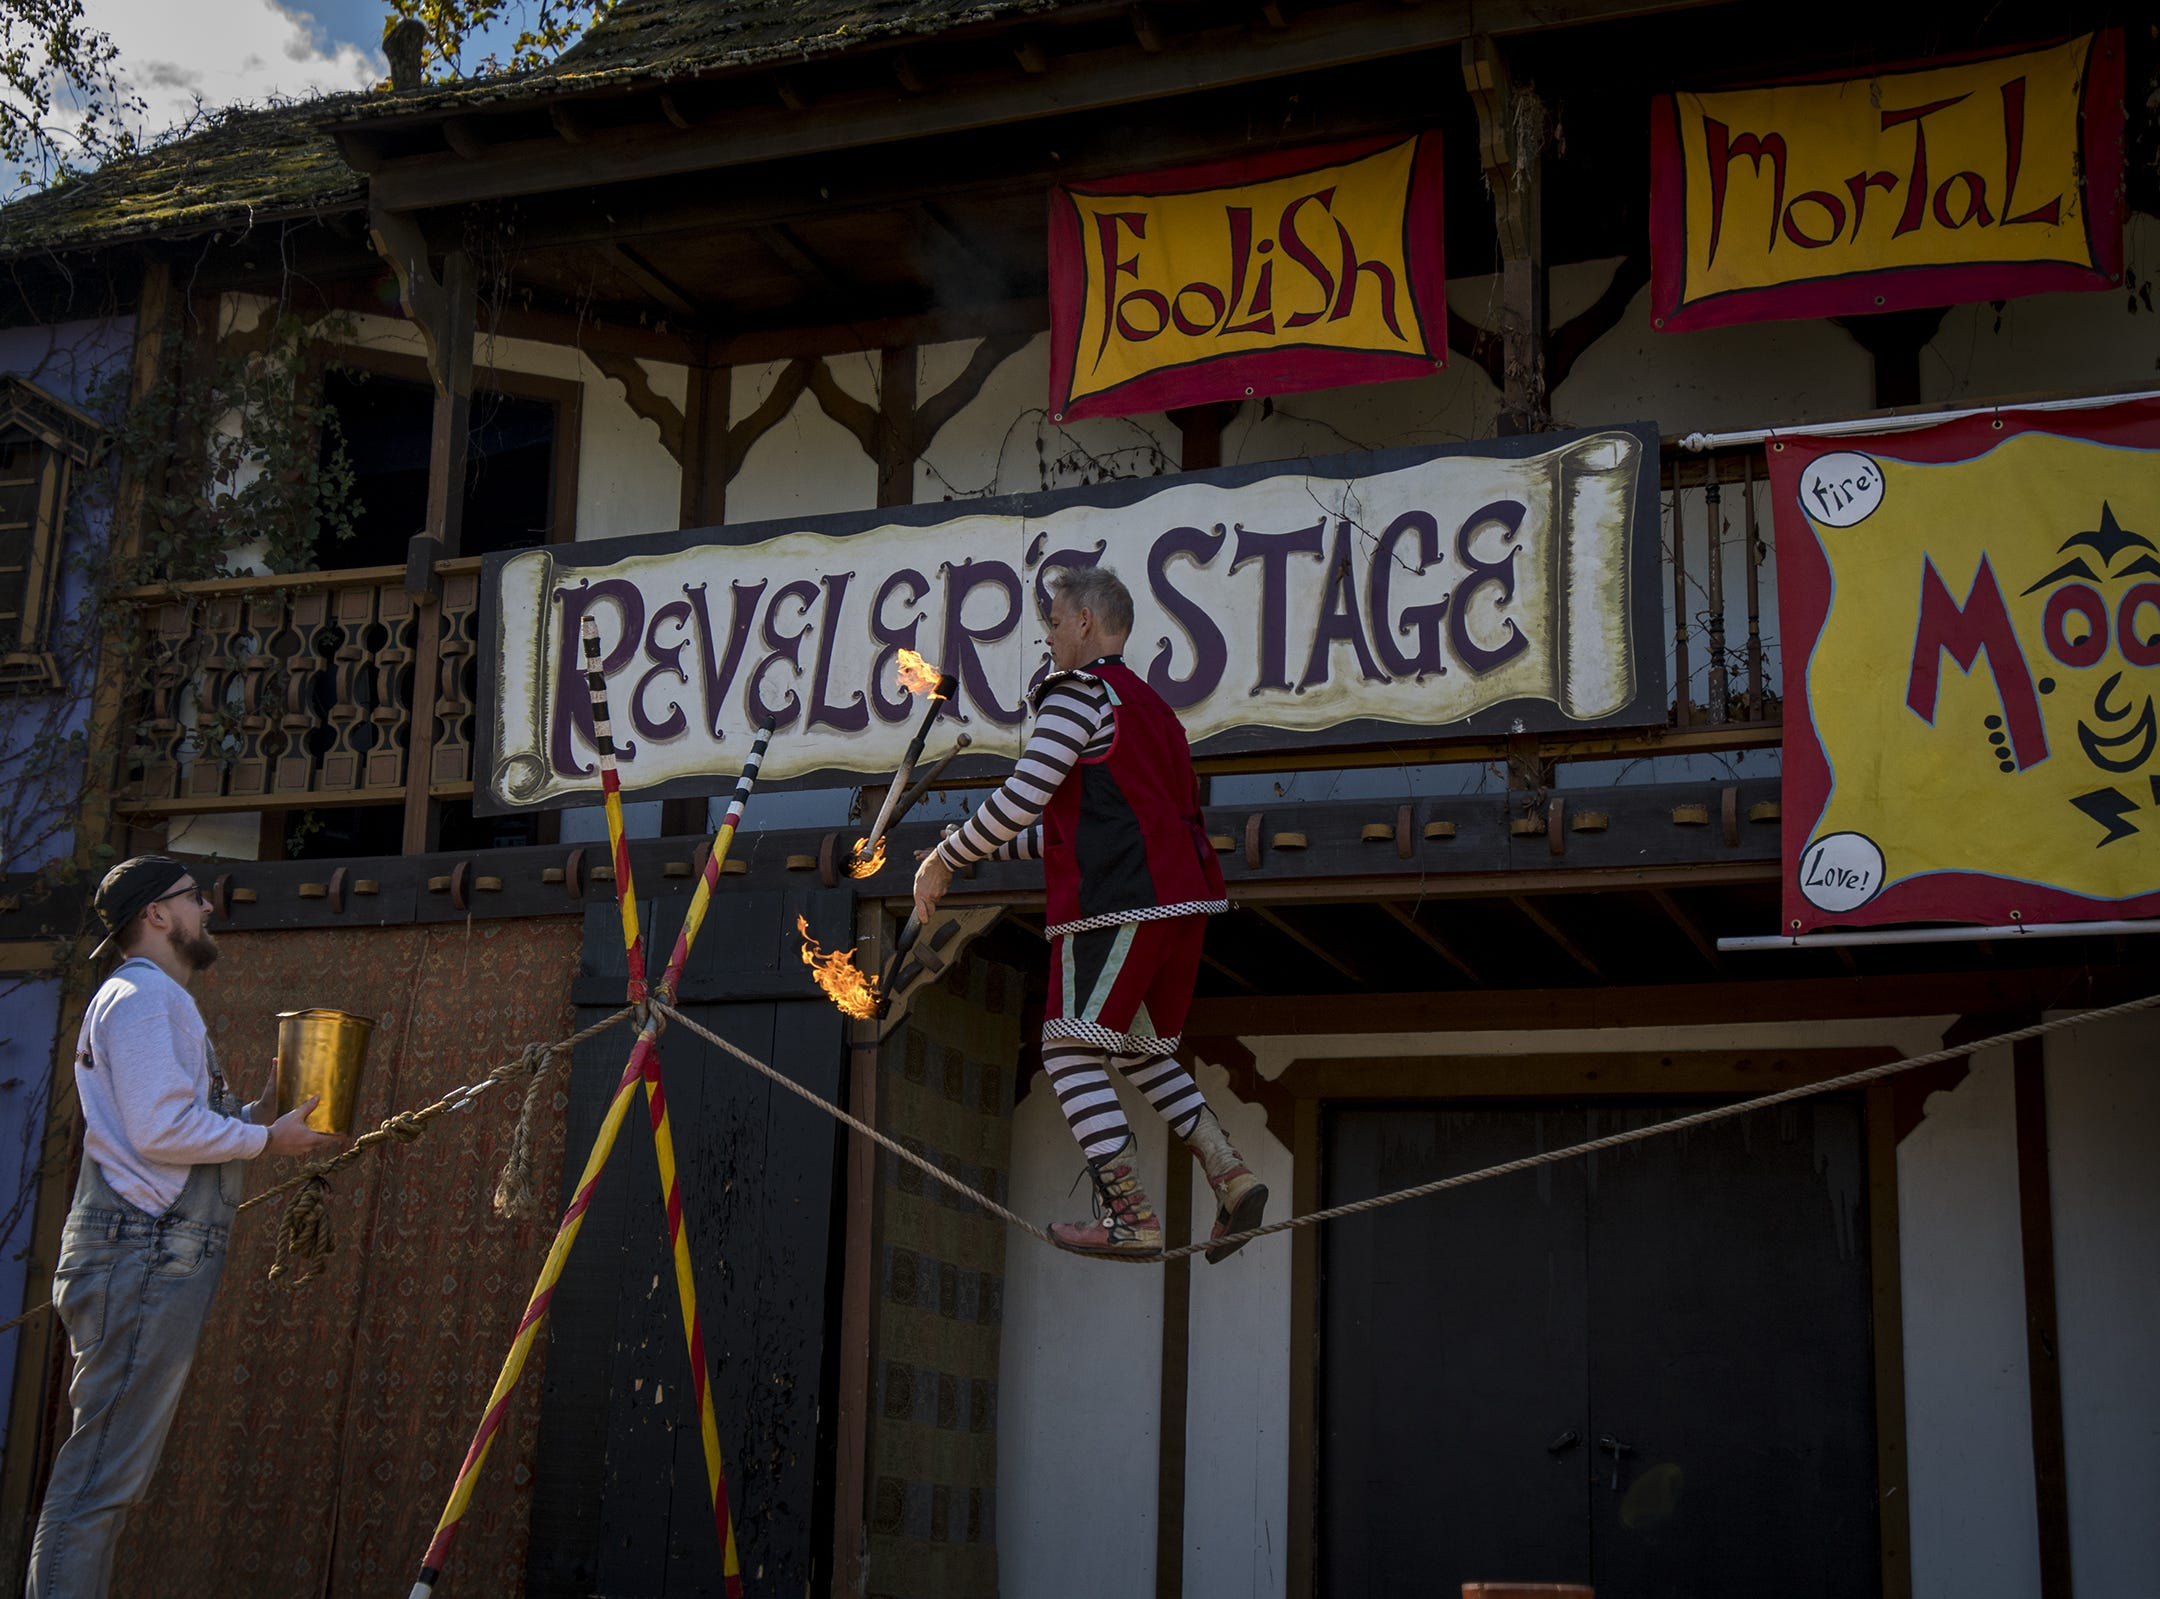 Stage performer Moonie juggles fire sticks on a tightrope at the Ohio Renaissance Festival Sunday, October 21, 2018 in Waynesville, Ohio.